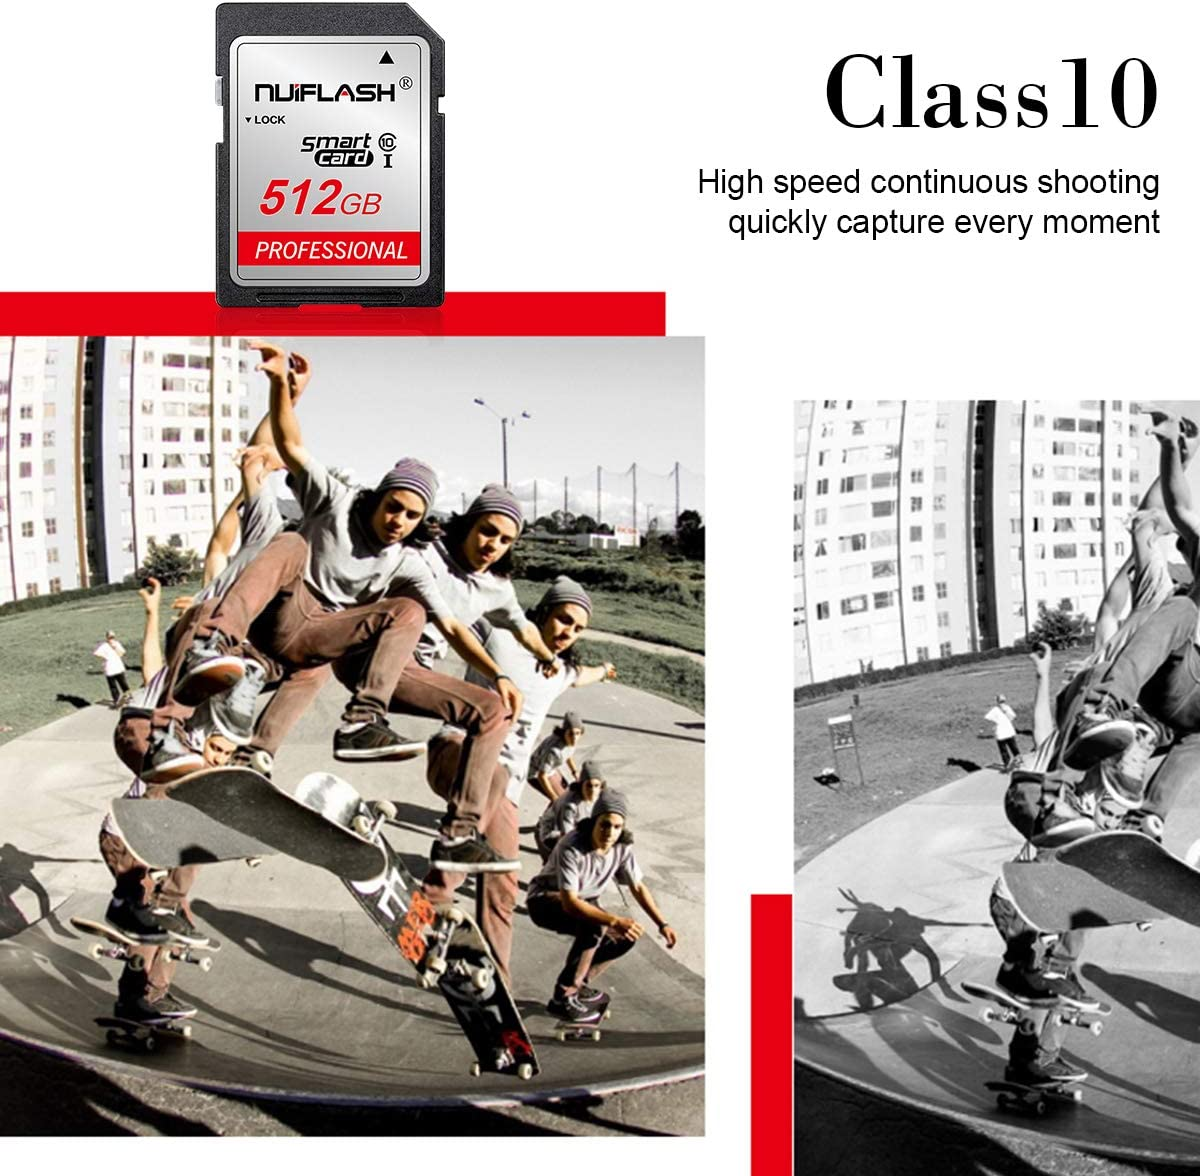 SD Card 512gb,Memory Card 512GB TF Card,Memory Card 512GB Class 10 High Speed Compatible Computer Camera and Smartphone (512GB)